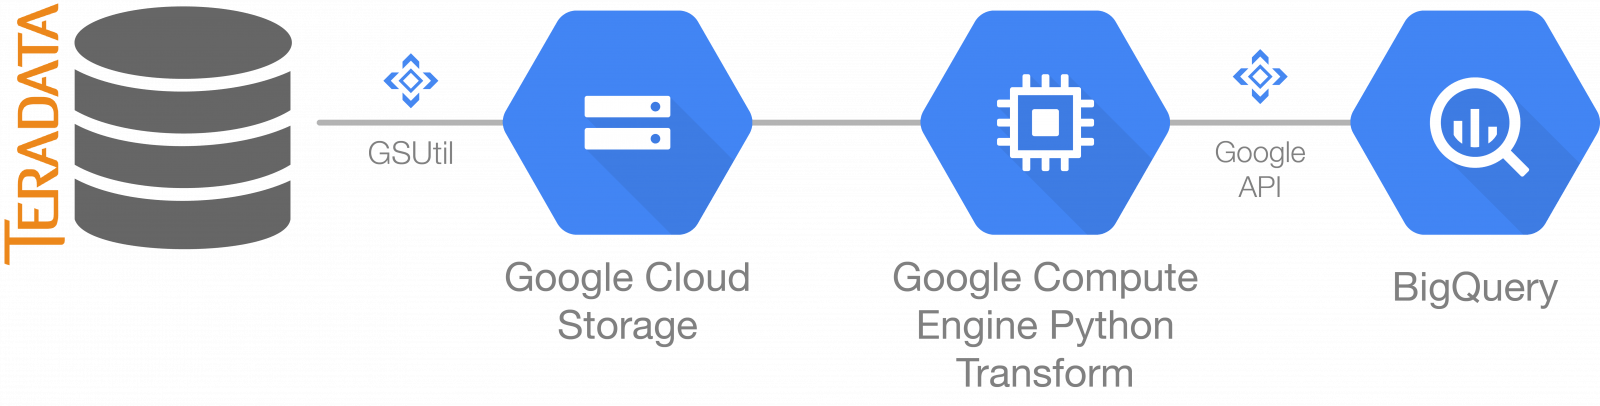 Migration to BigQuery  Part 2 of 3 - Execution - SpringML - Getting